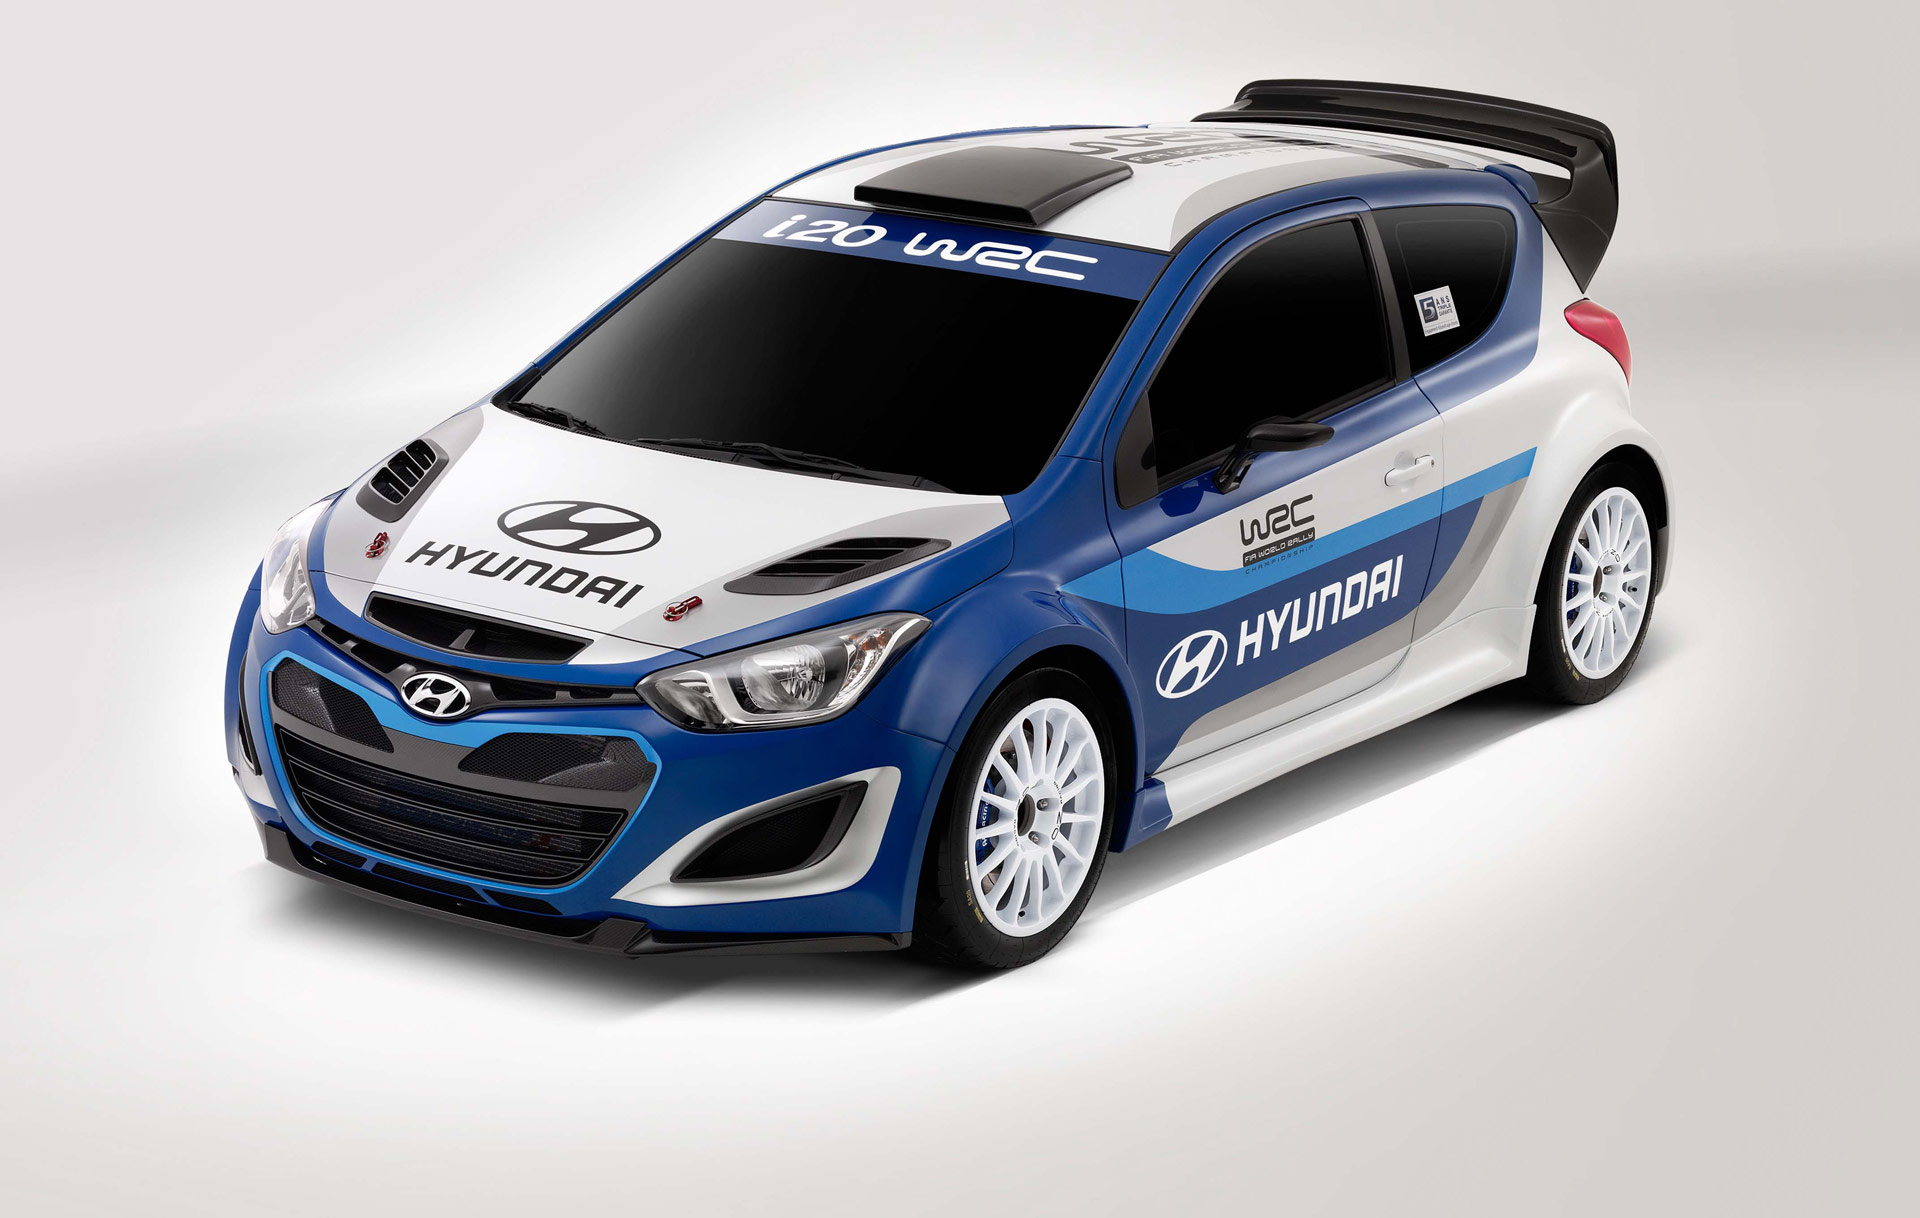 2013 hyundai i20 wrc news and information research and history. Black Bedroom Furniture Sets. Home Design Ideas